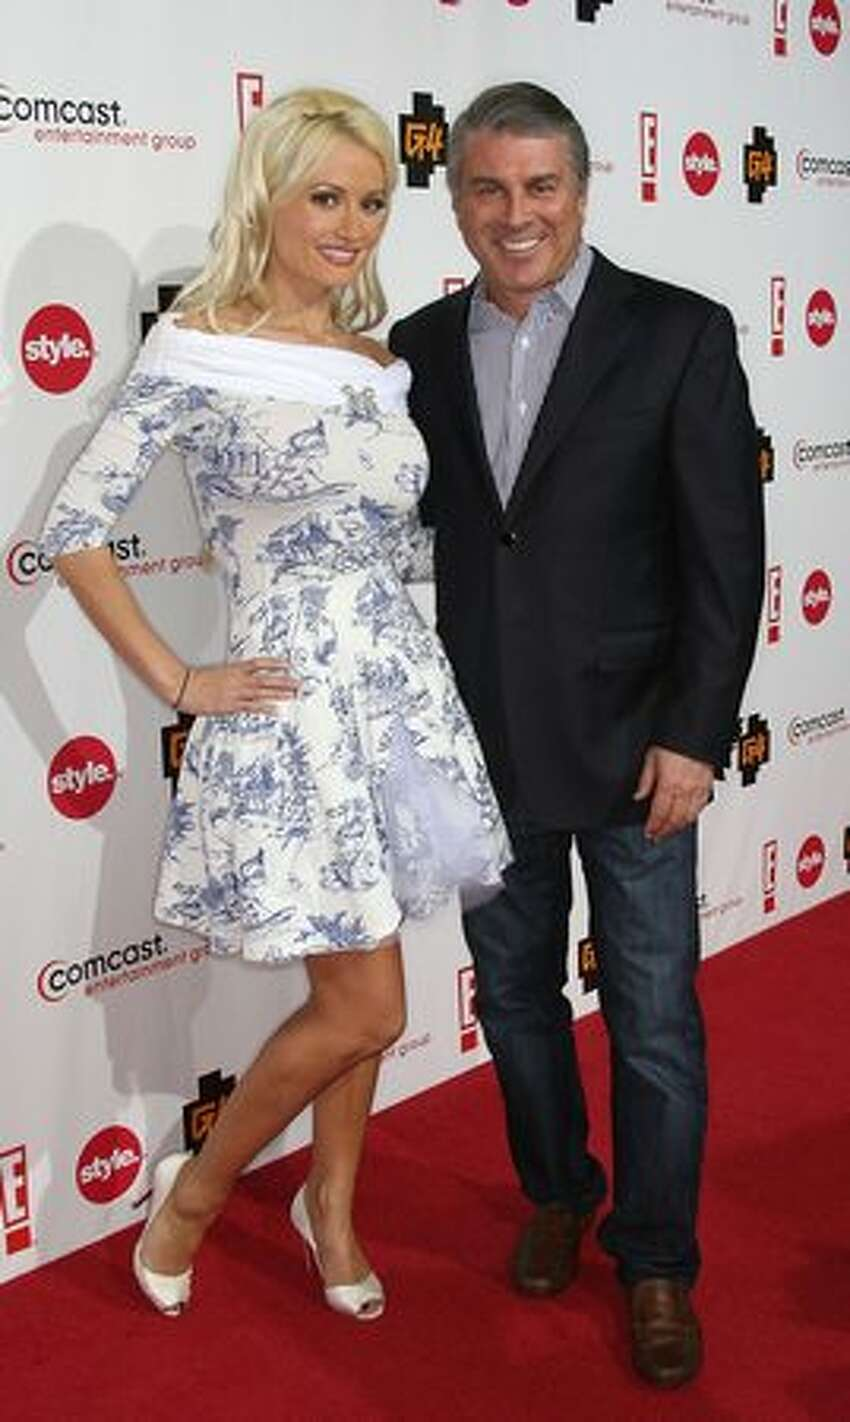 Actress Holly Madison, left, and Ted Harbert, President/CEO, Comcast Entertainment Group arrive.